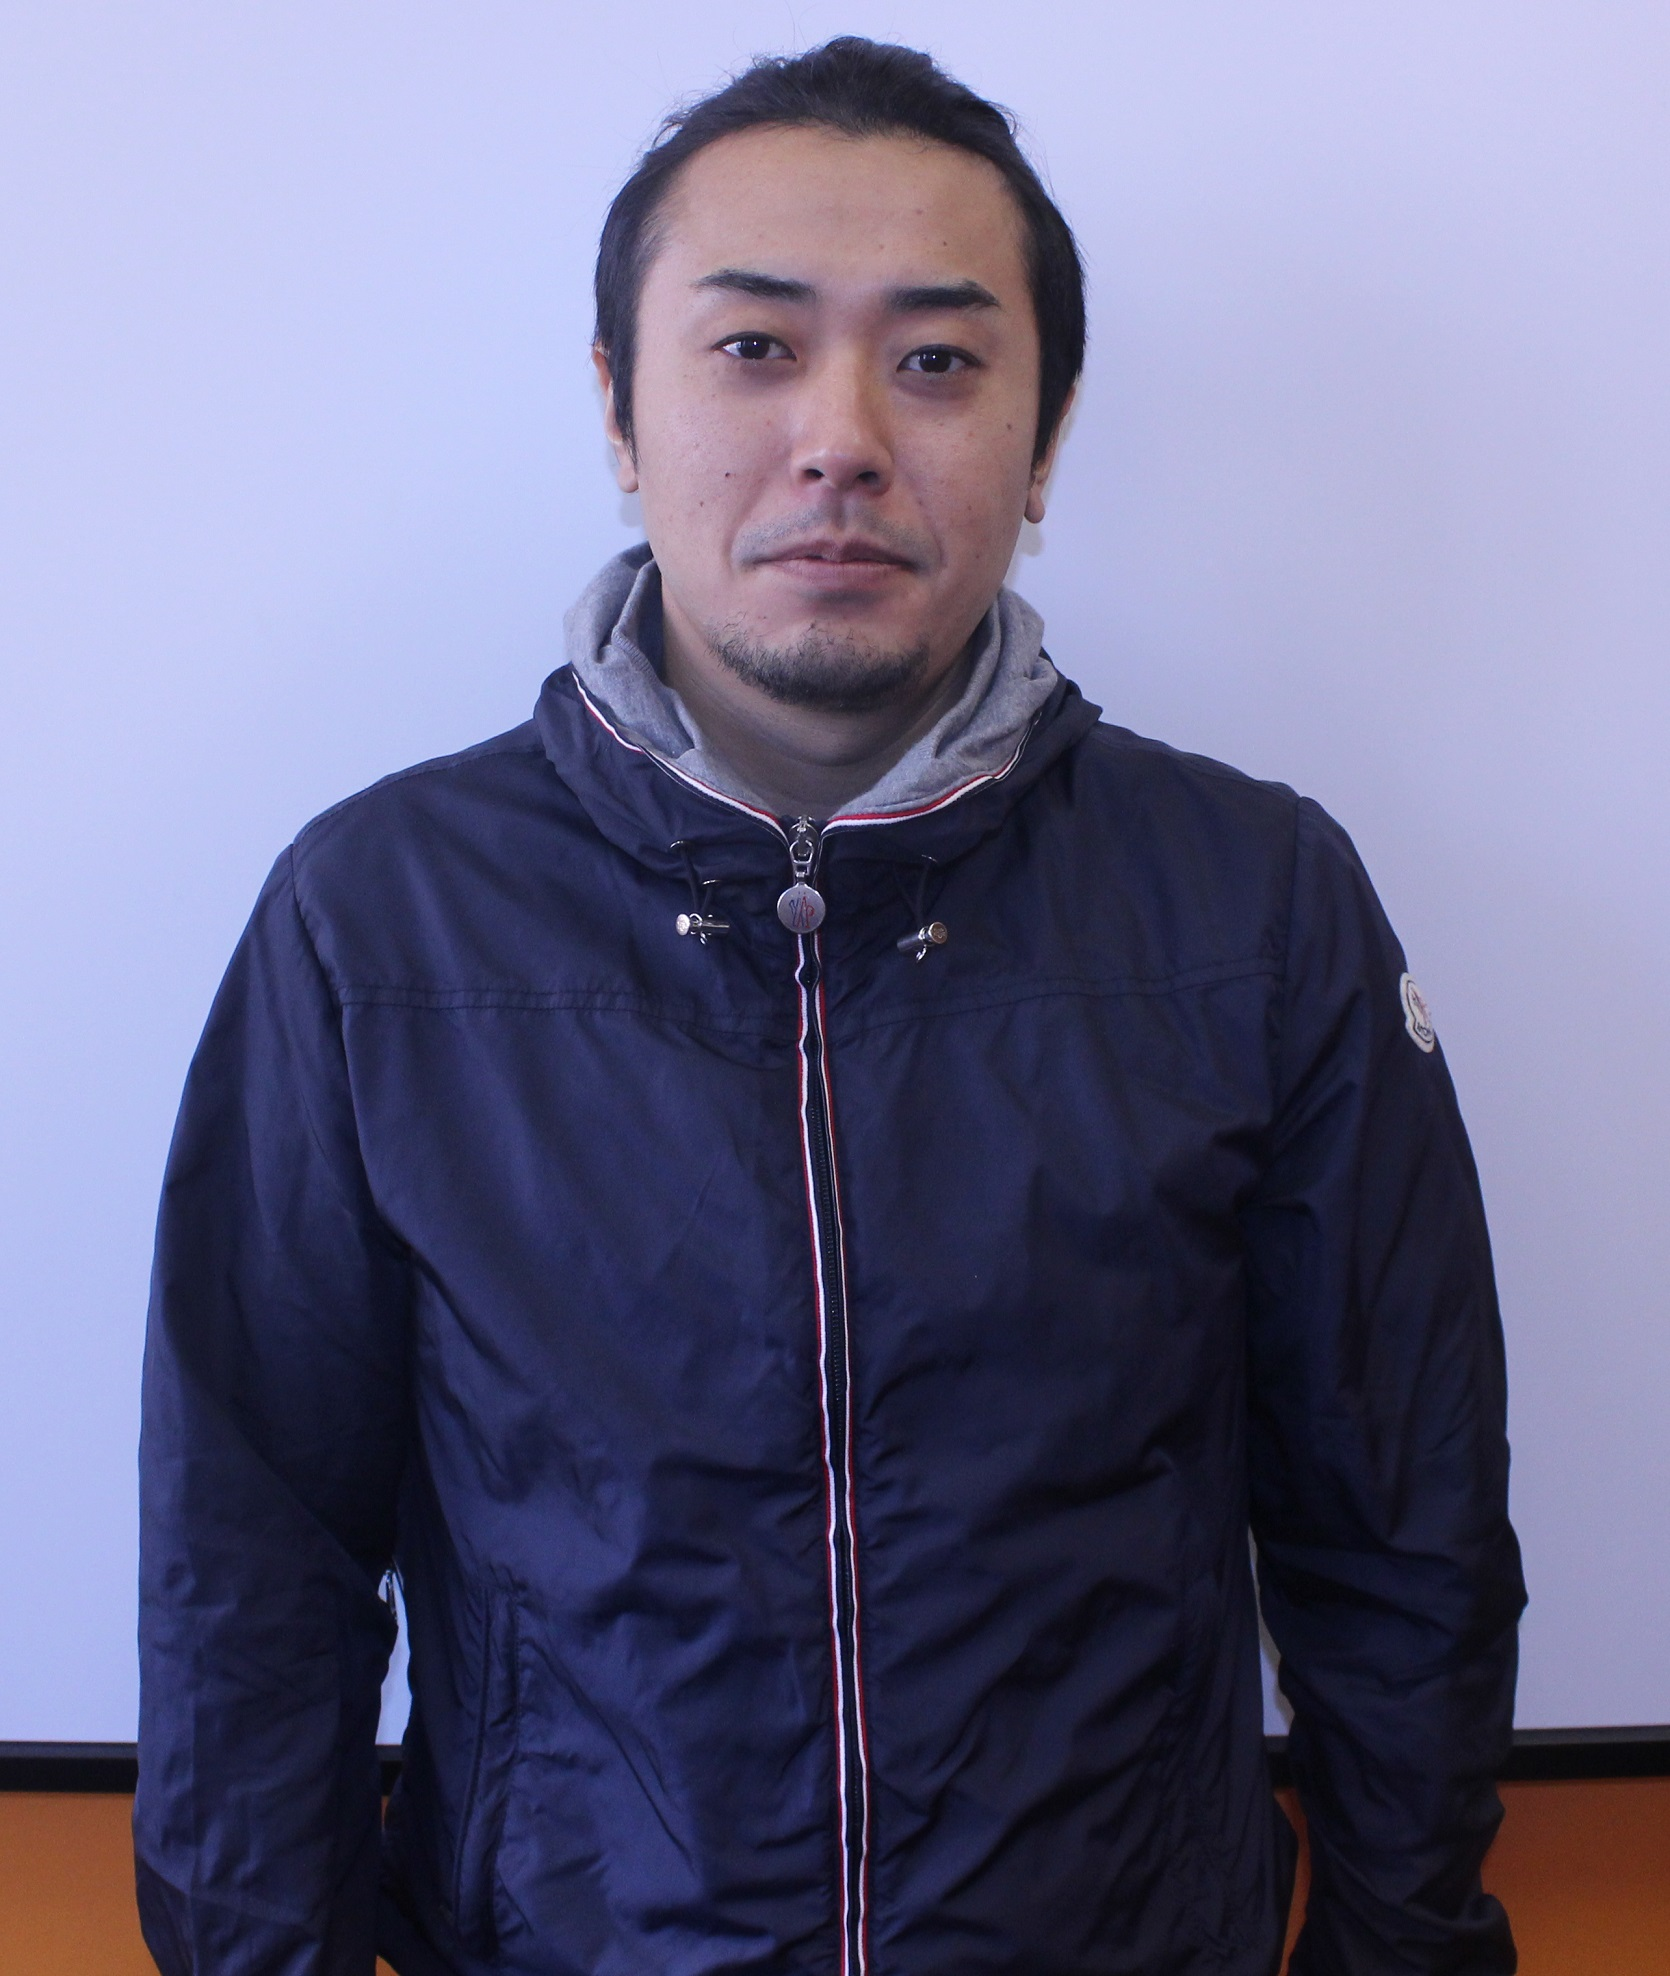 Takashi Ohara from Japan  is studying English in Canada with EC Montreal